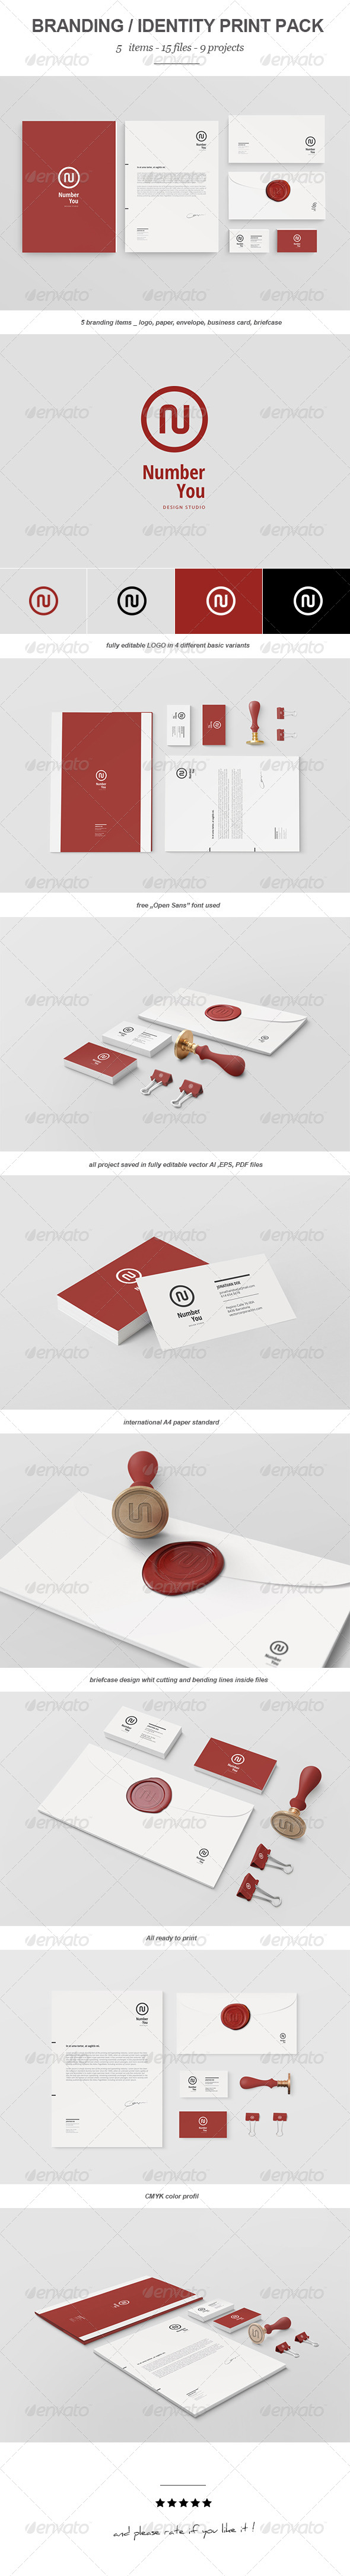 Number You Branding Print Pack - Stationery Print Templates